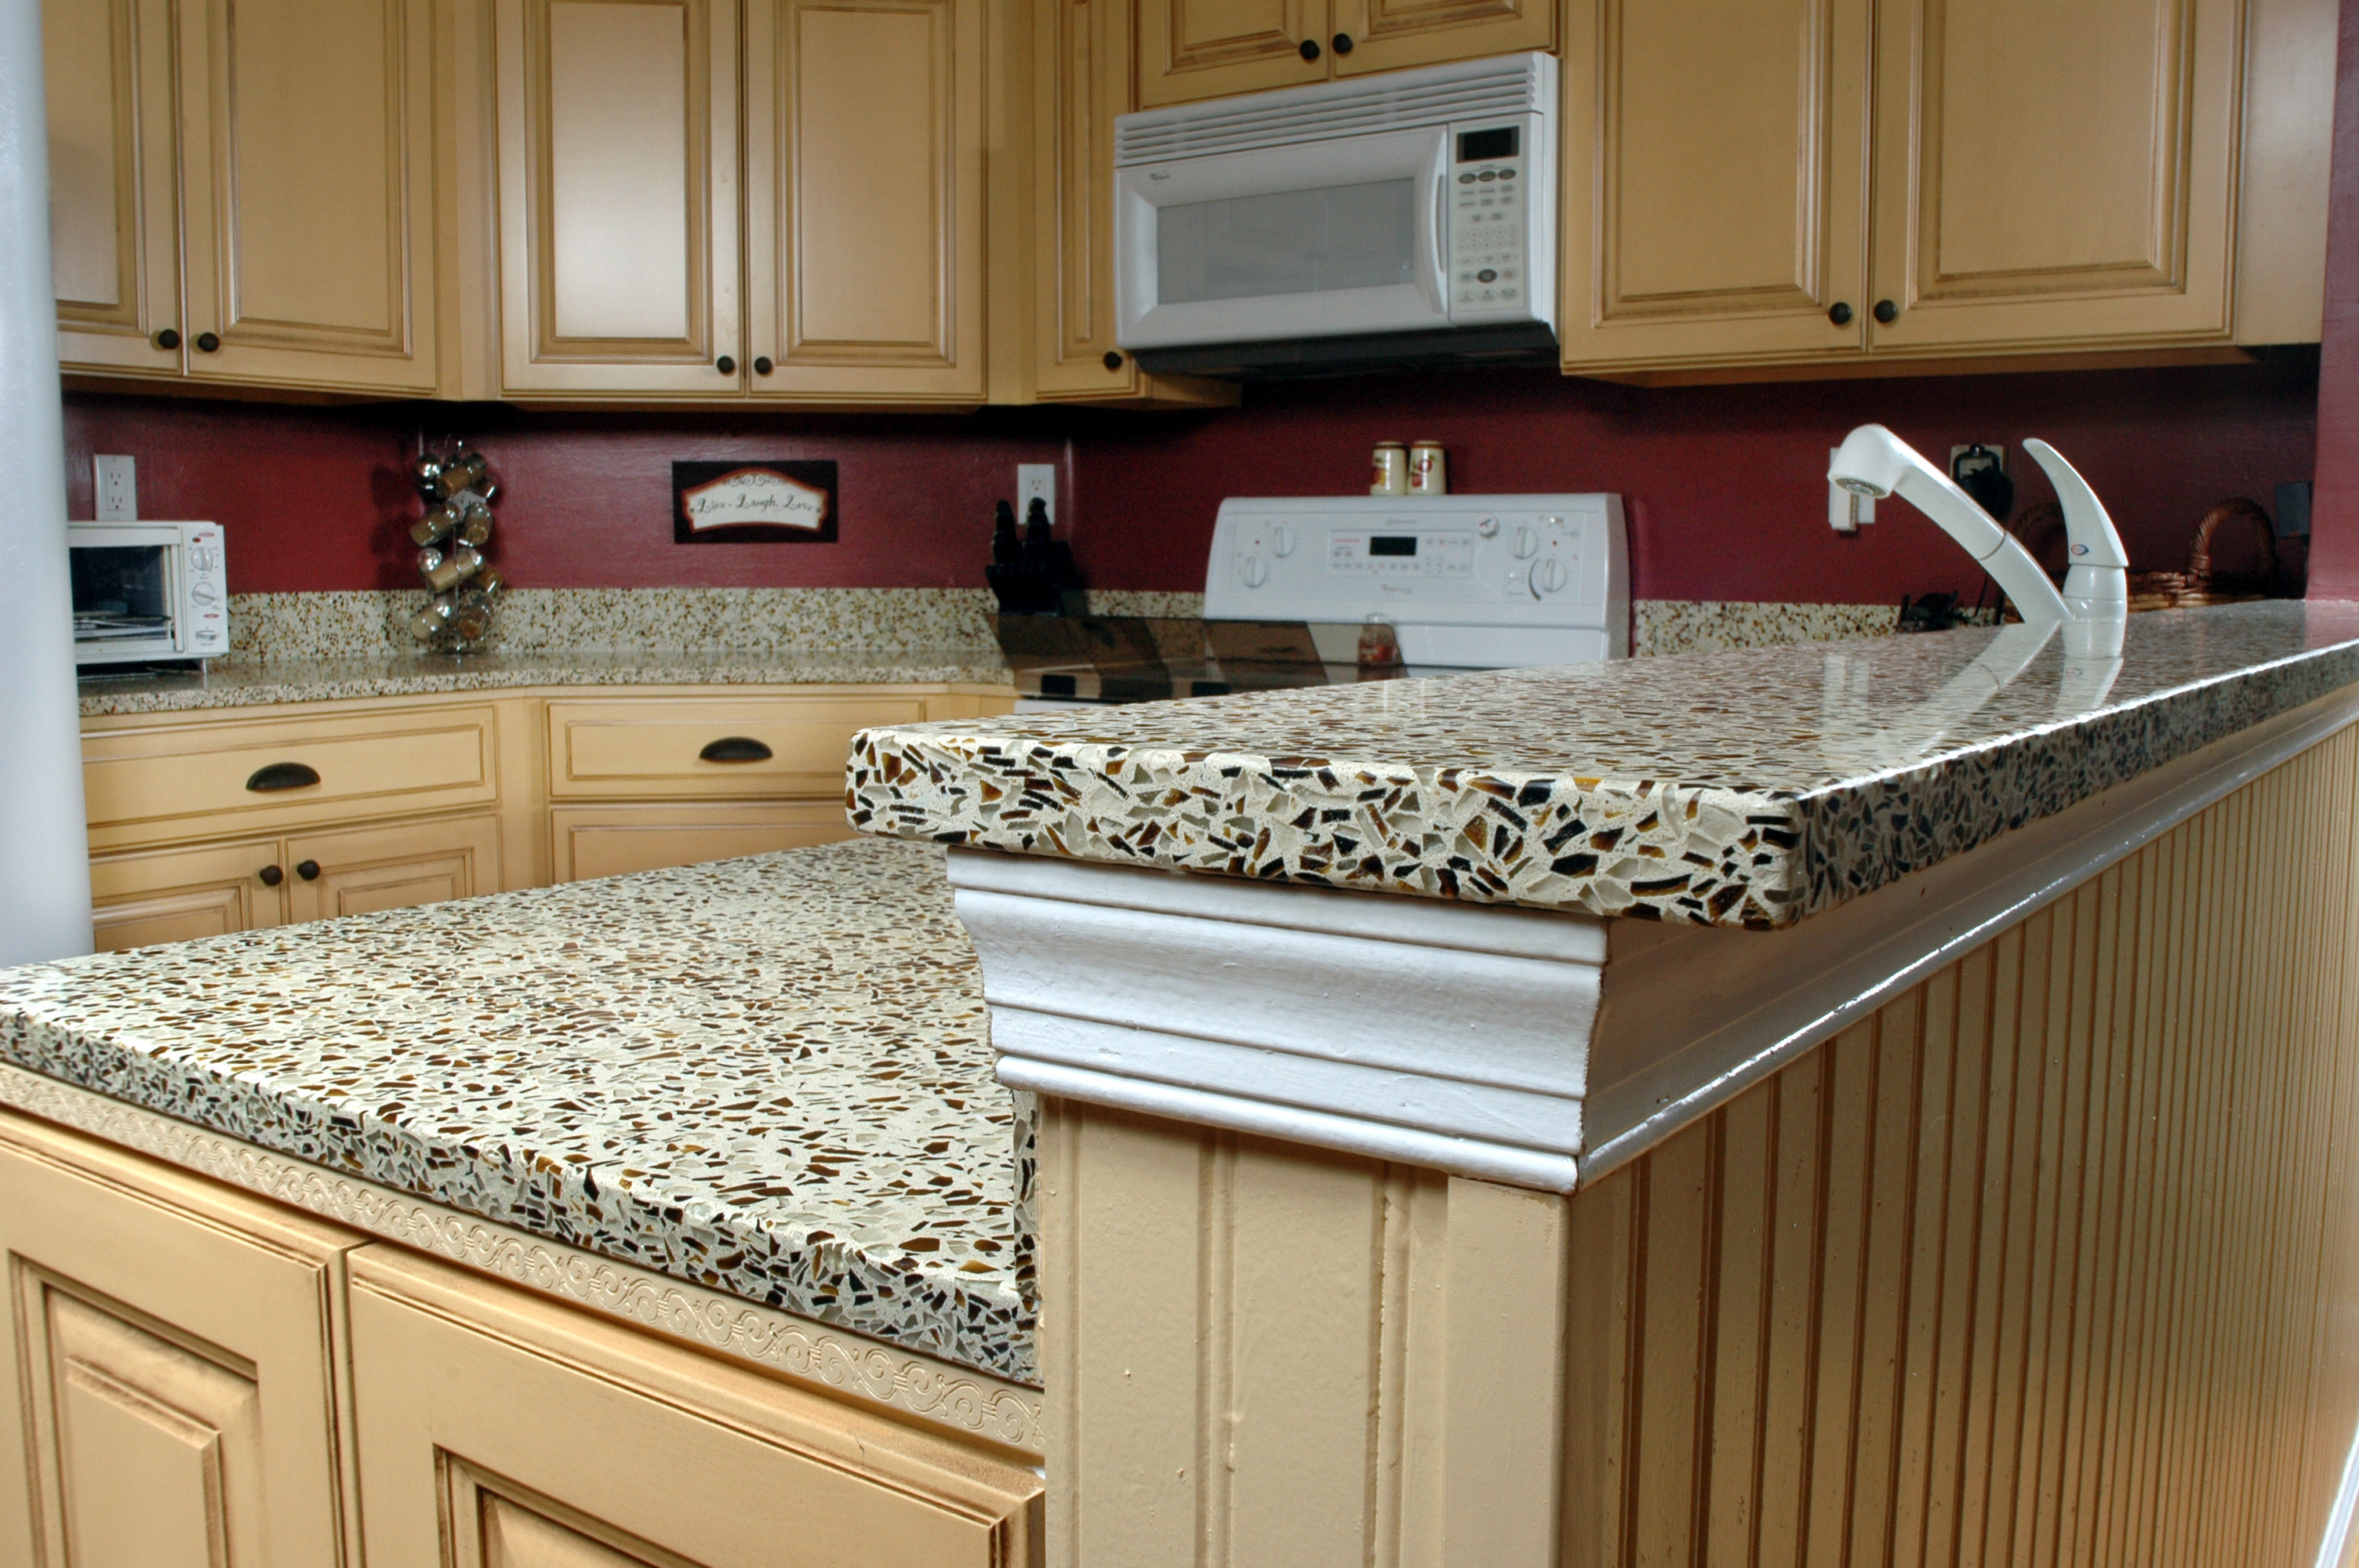 painting kitchen countertops ideas | custom home design